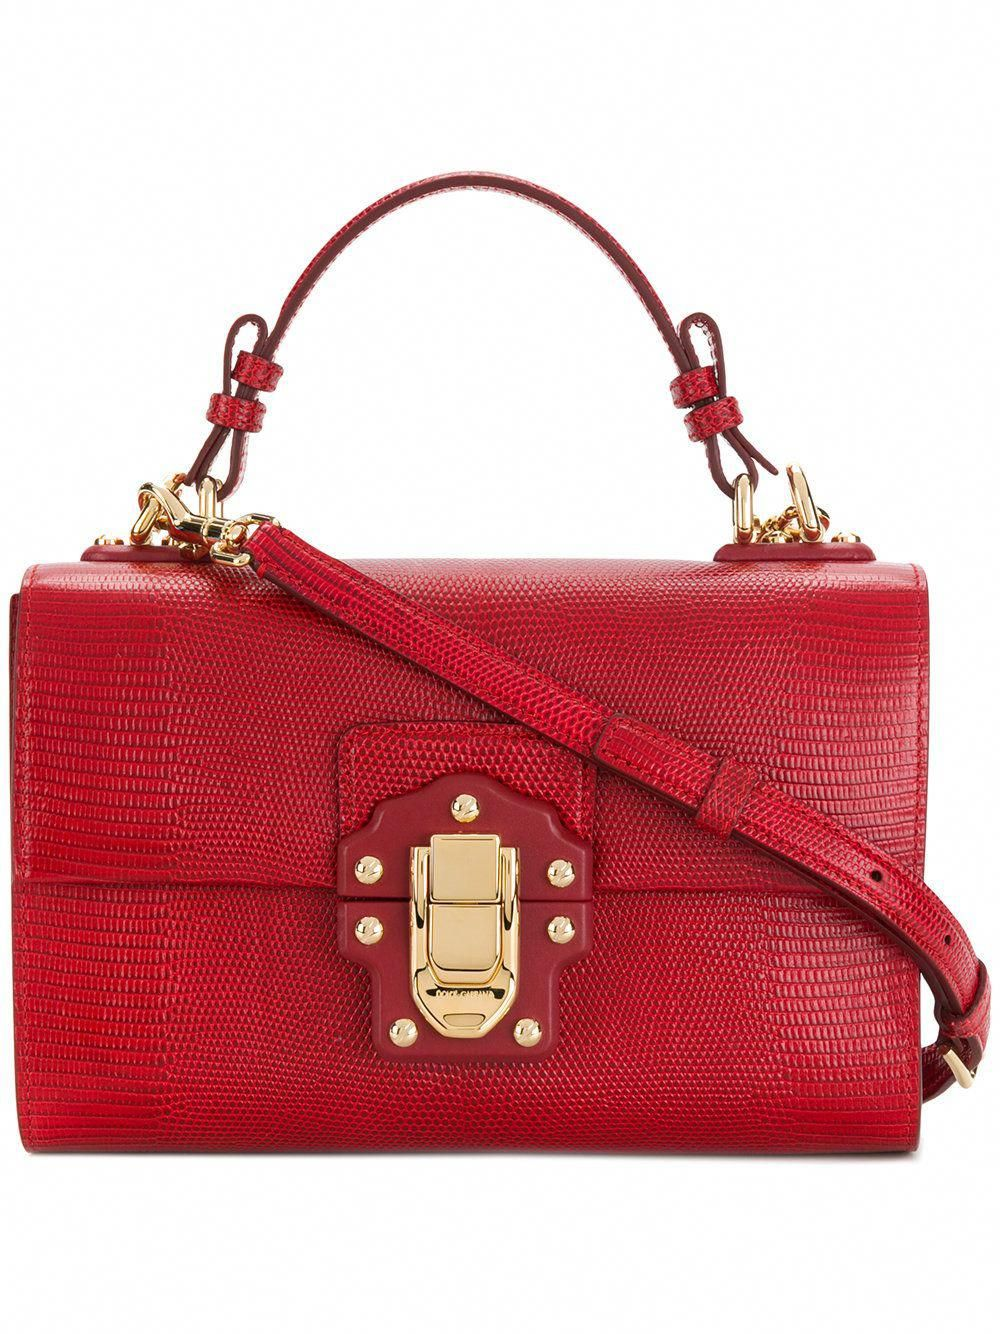 6d369f924ff8 DOLCE   GABBANA RED.  dolcegabbana  bags  shoulder bags  hand bags ...